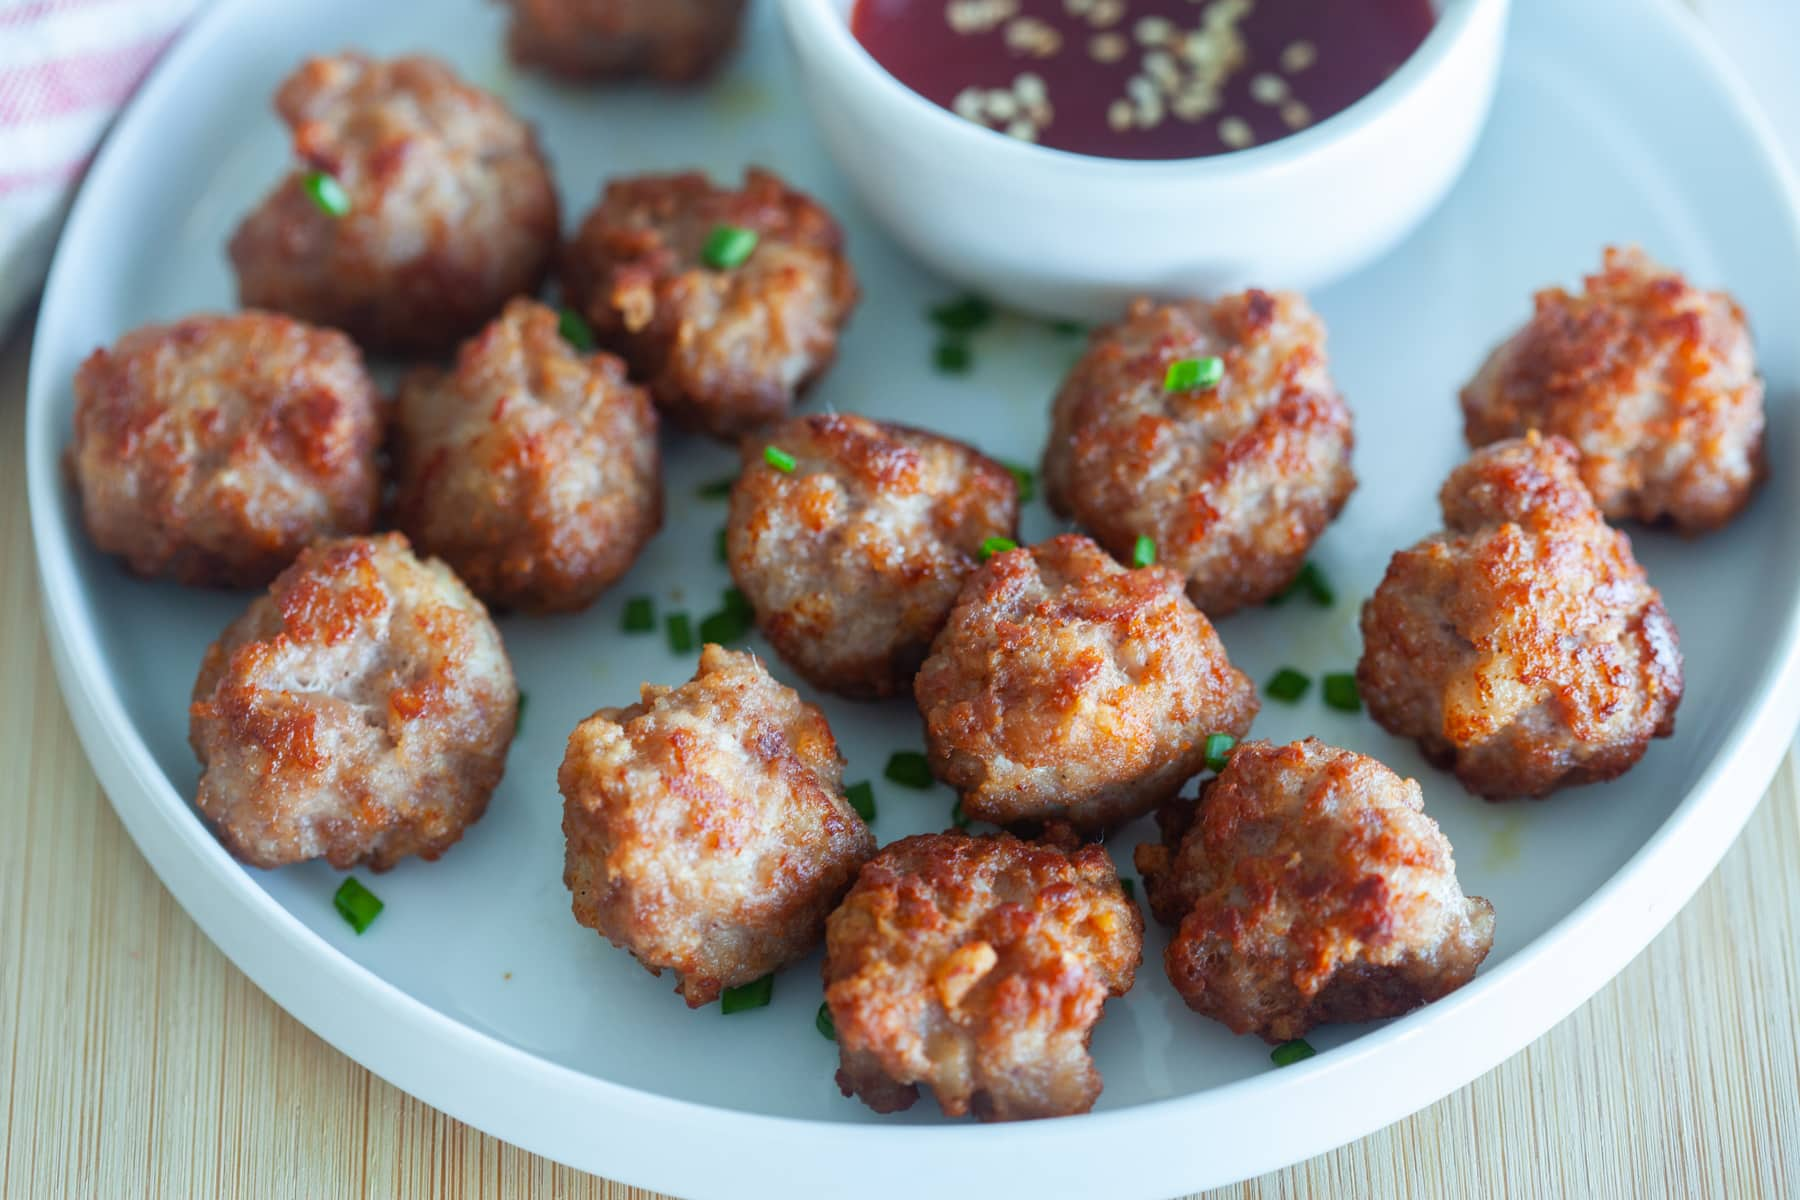 Fried meatballs, ready to serve.